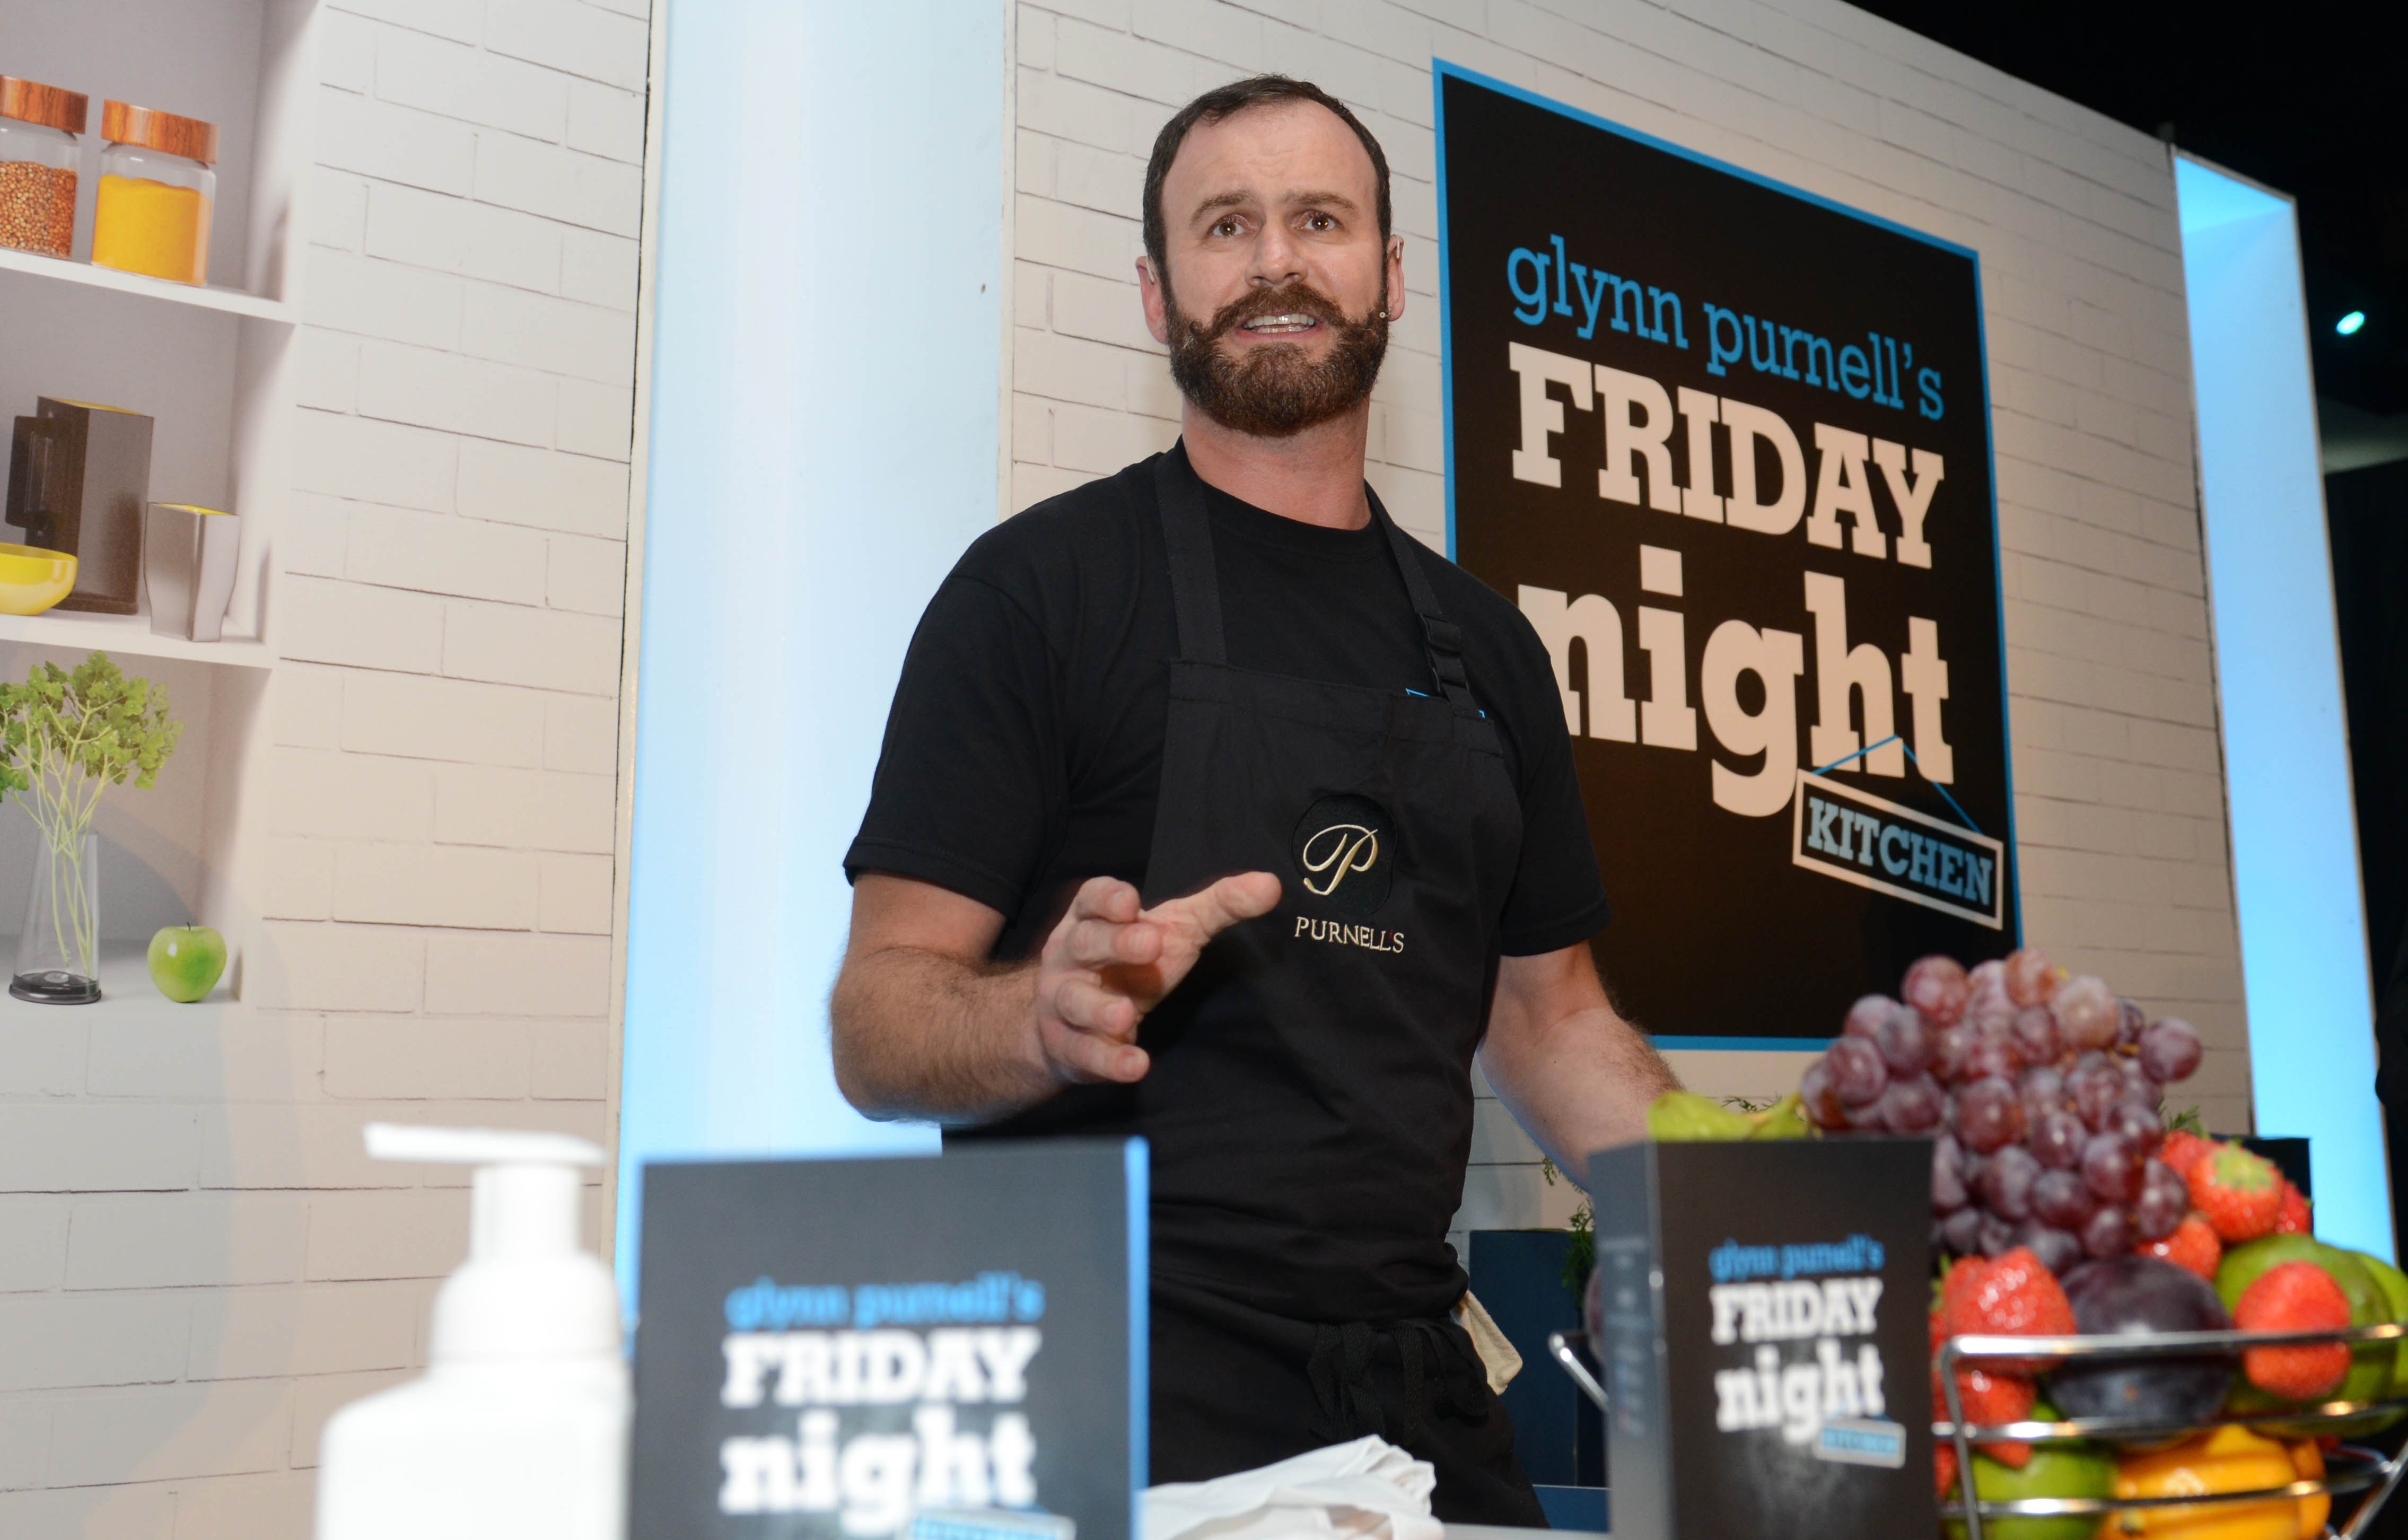 Get feeling foodie on a Friday! #FridayNightFoodie is back!